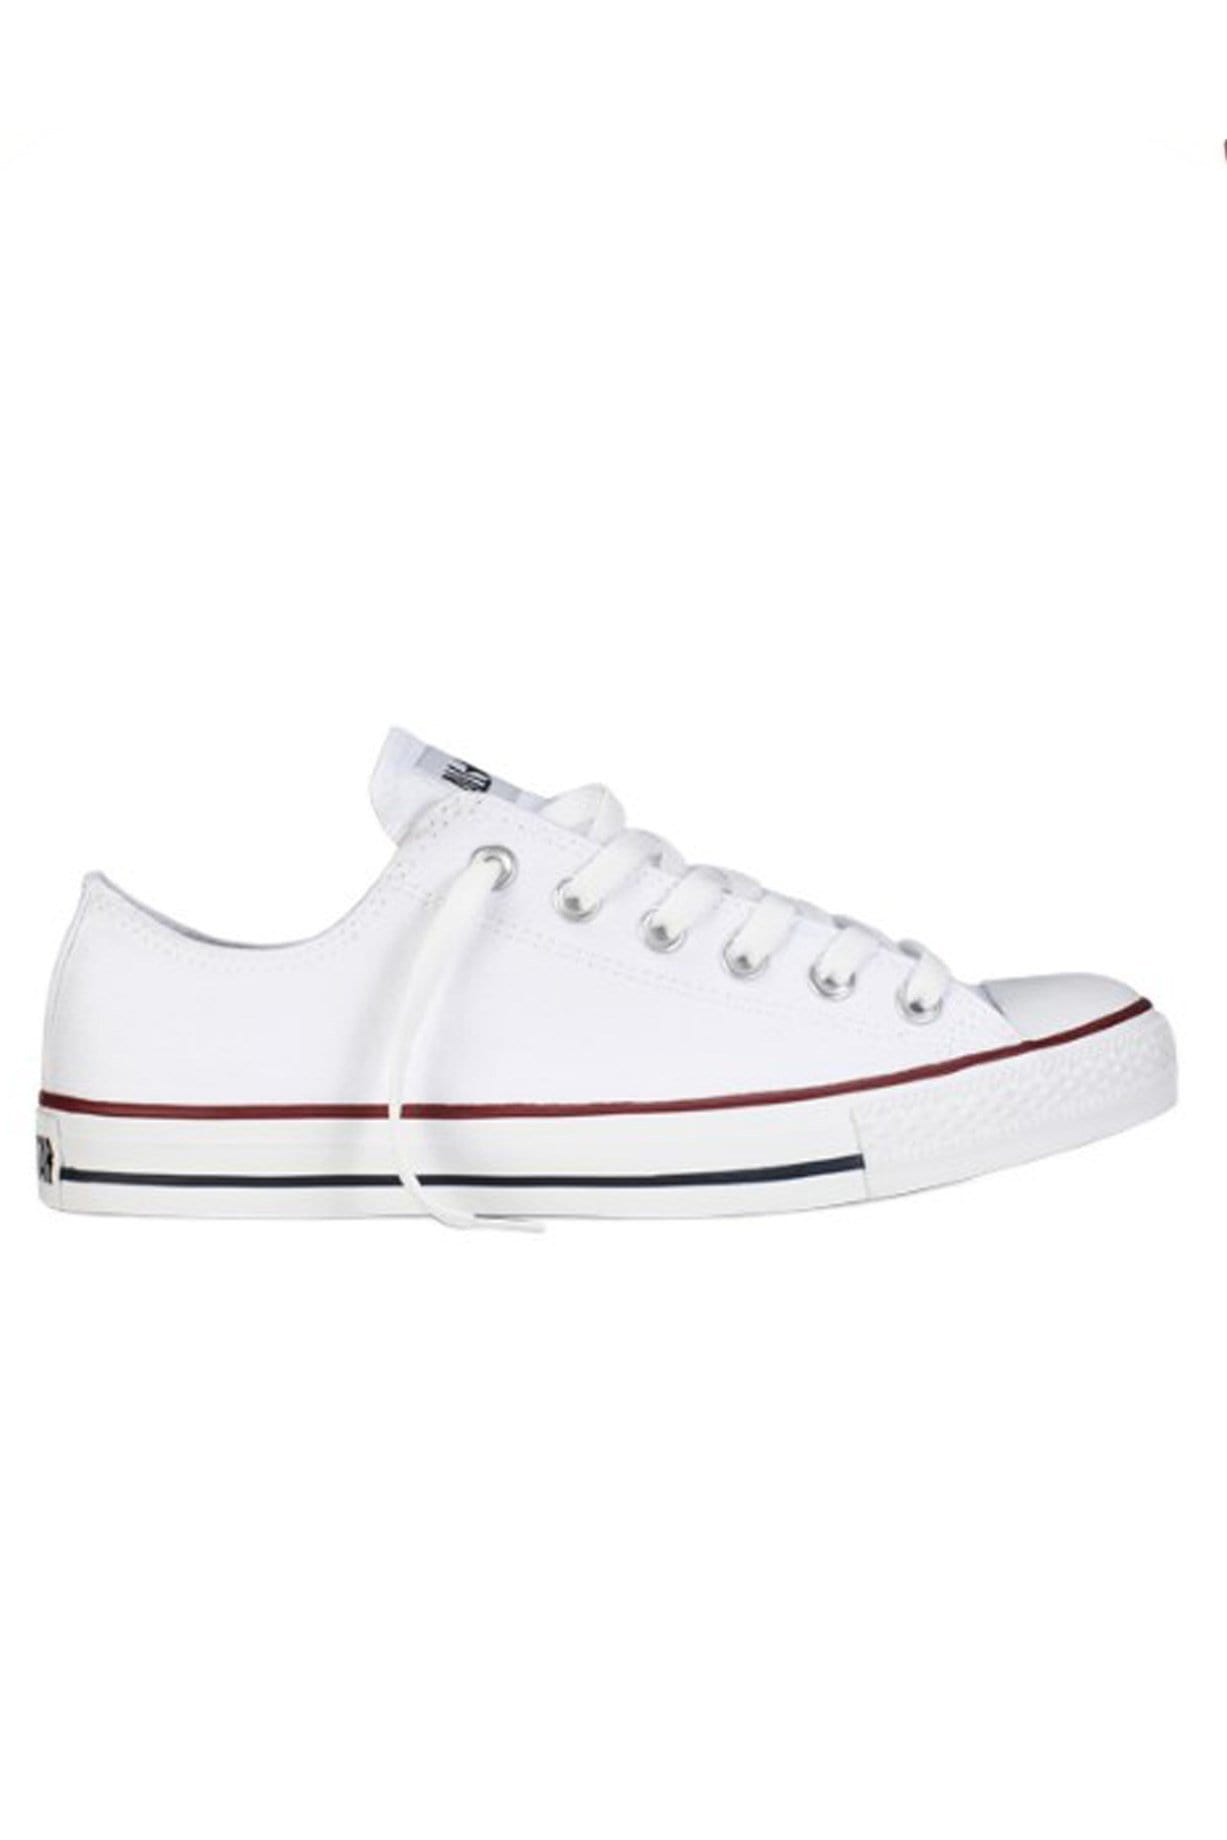 Chuck Taylor All Star Lo Optical White